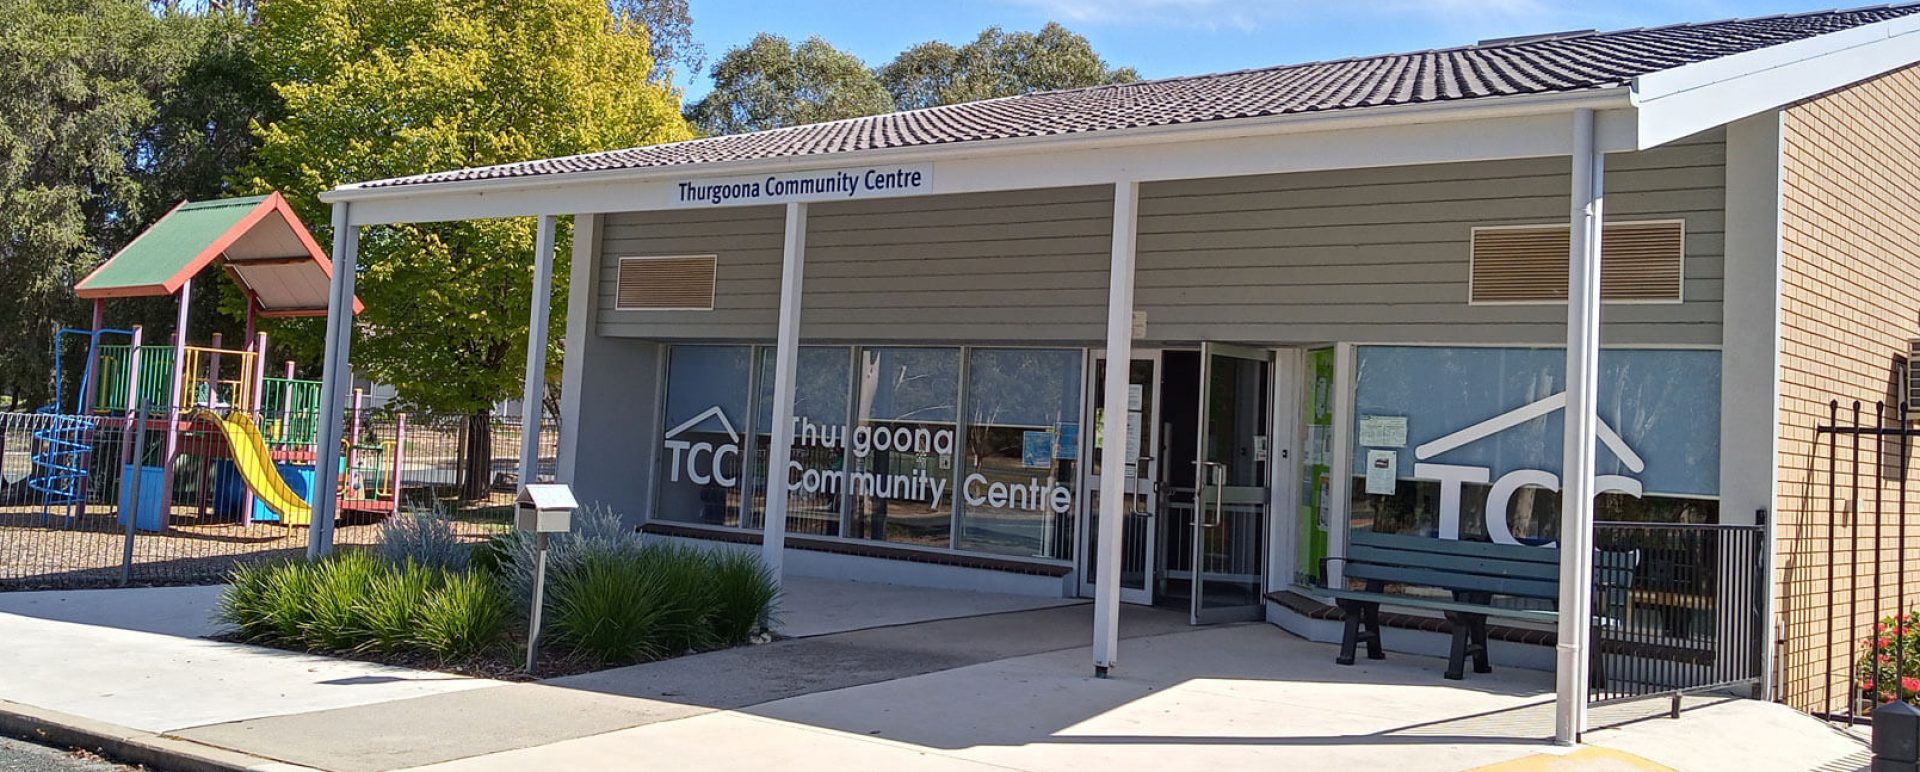 Thurgoona Community Centre